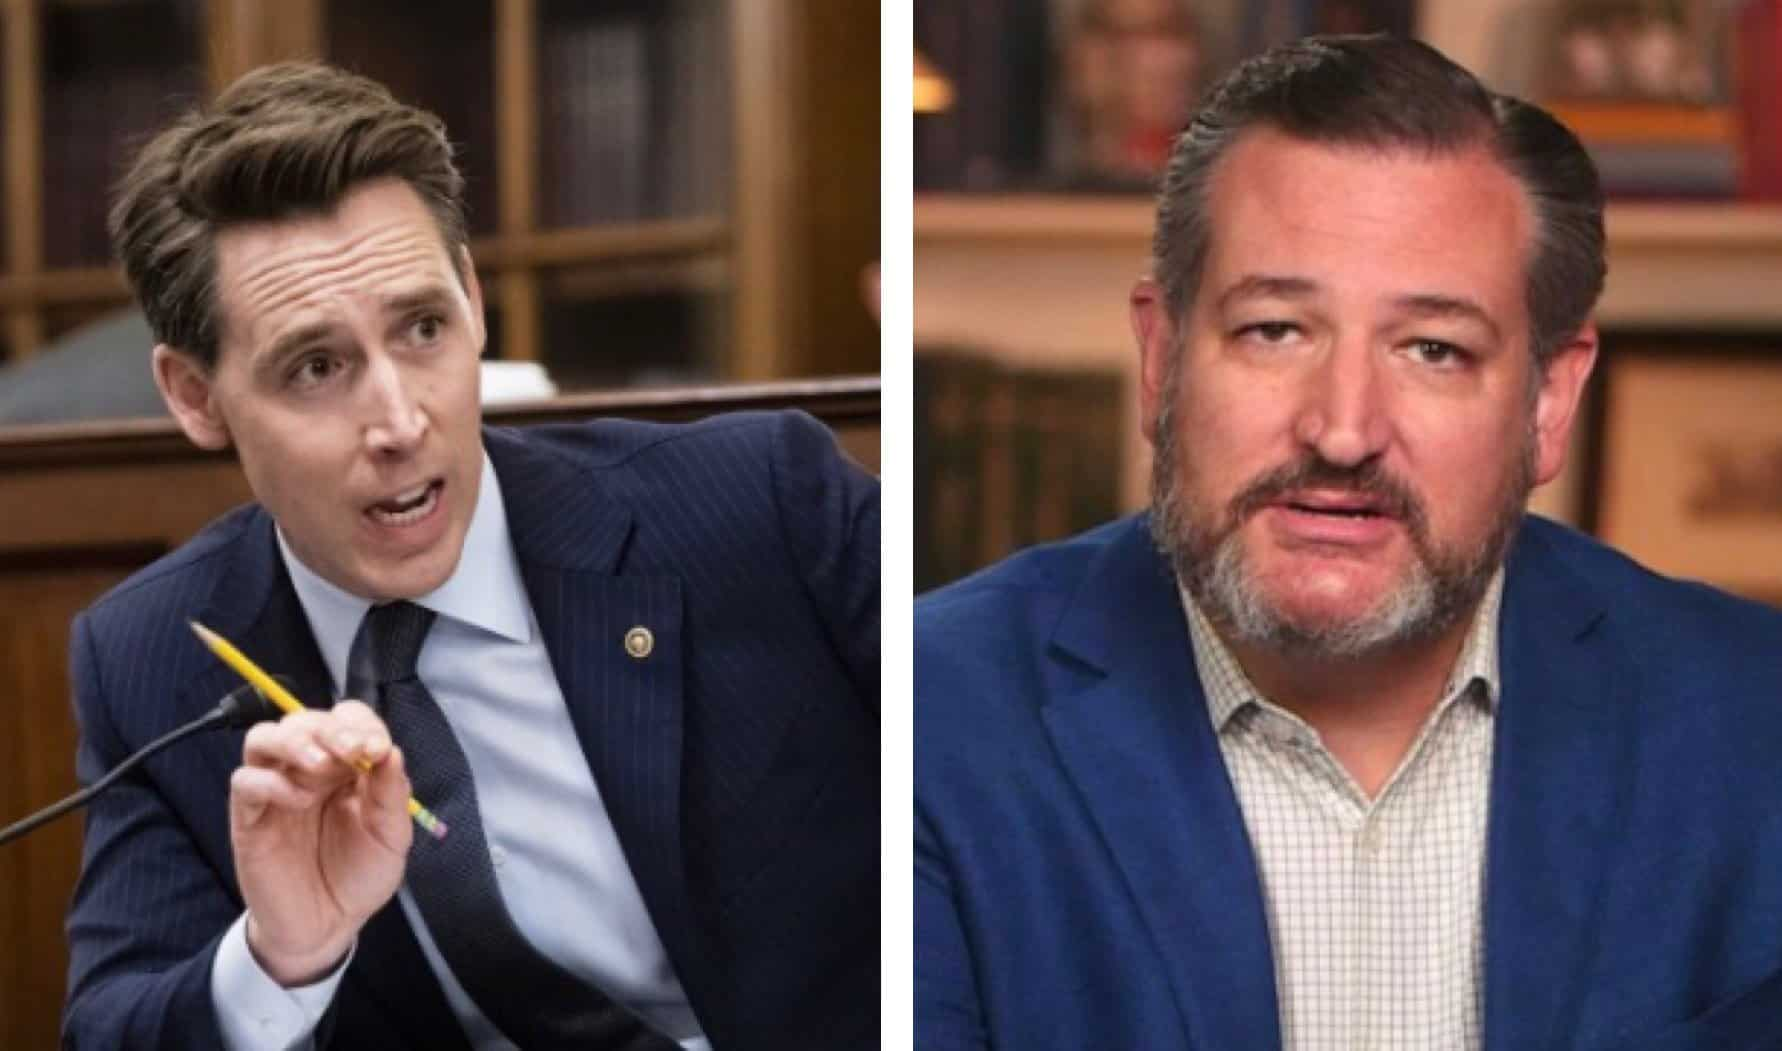 They Don't Want the Truth to Come Out: Senate Democrats File Ethics Complaint Against Senators Cruz and Hawley for Challenging Election Fraud 1